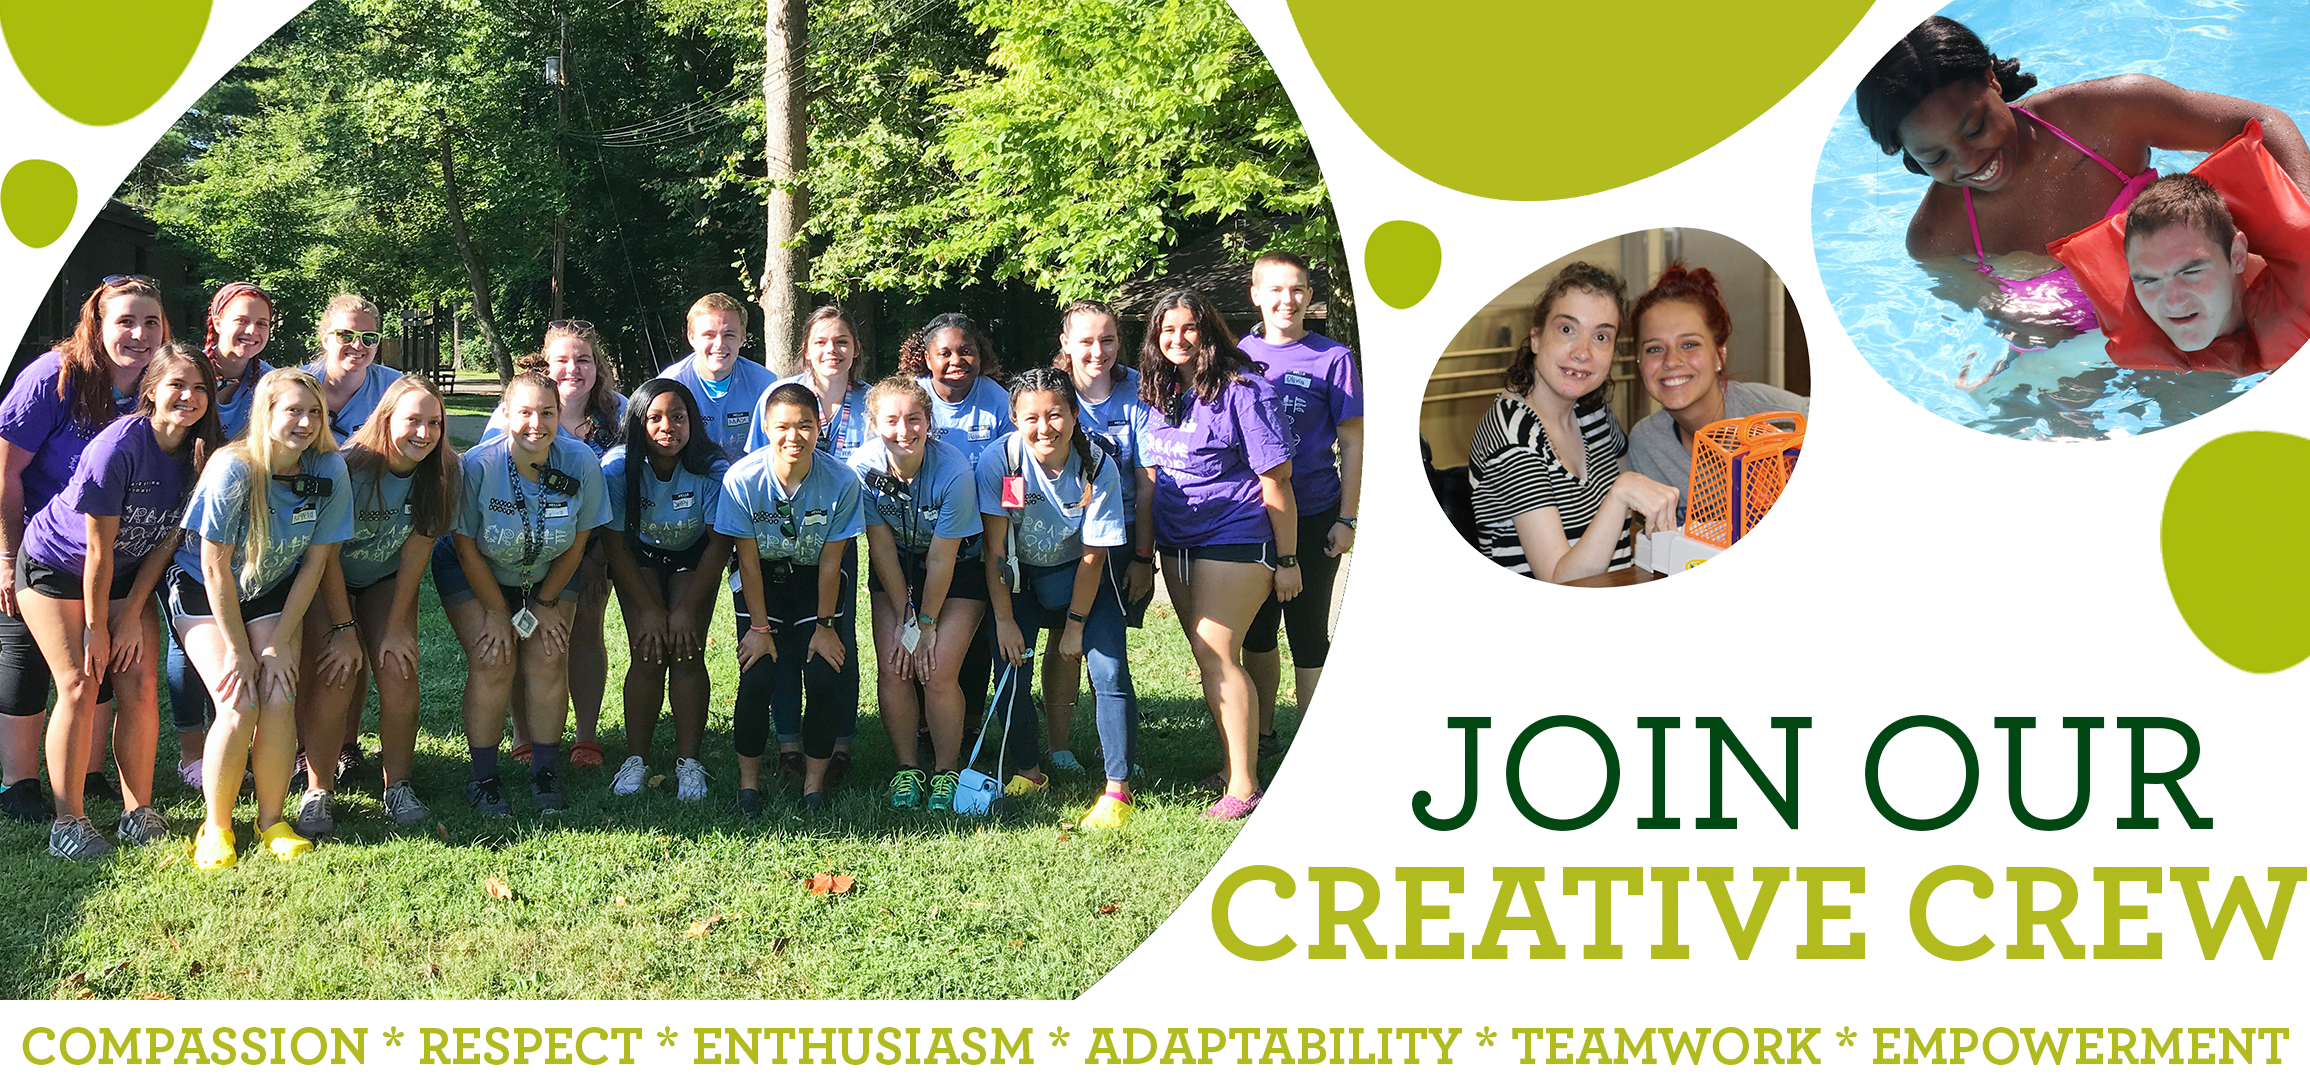 Summer Overnight Camp Job Openings at Stepping Stones I Greater Cincinnati, Ohio